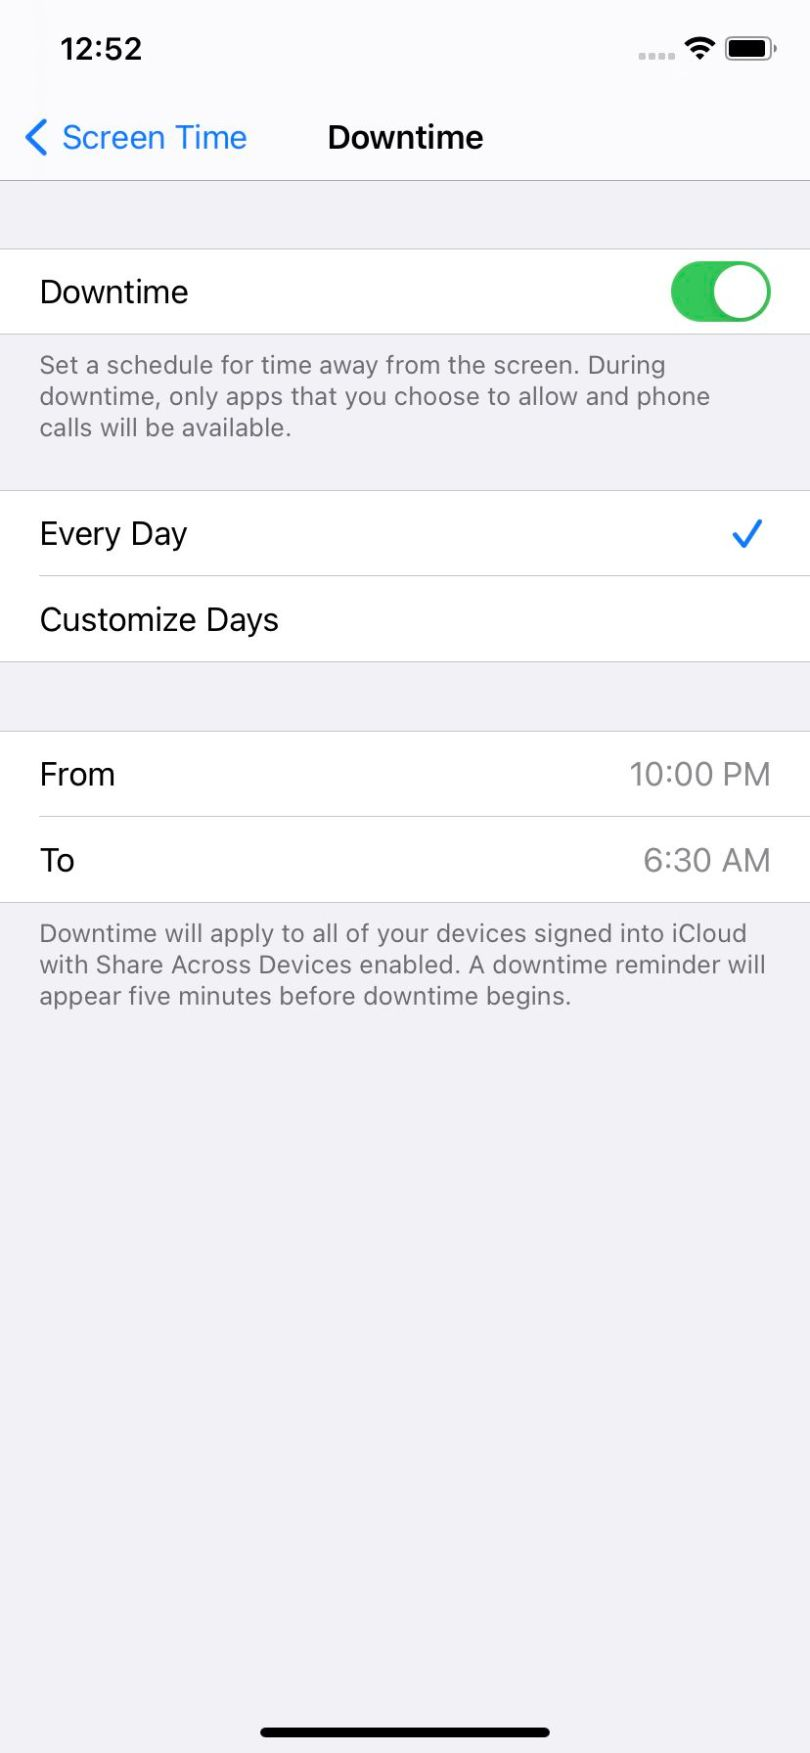 You can set Downtime for everyday or specific days, and for set times for each day